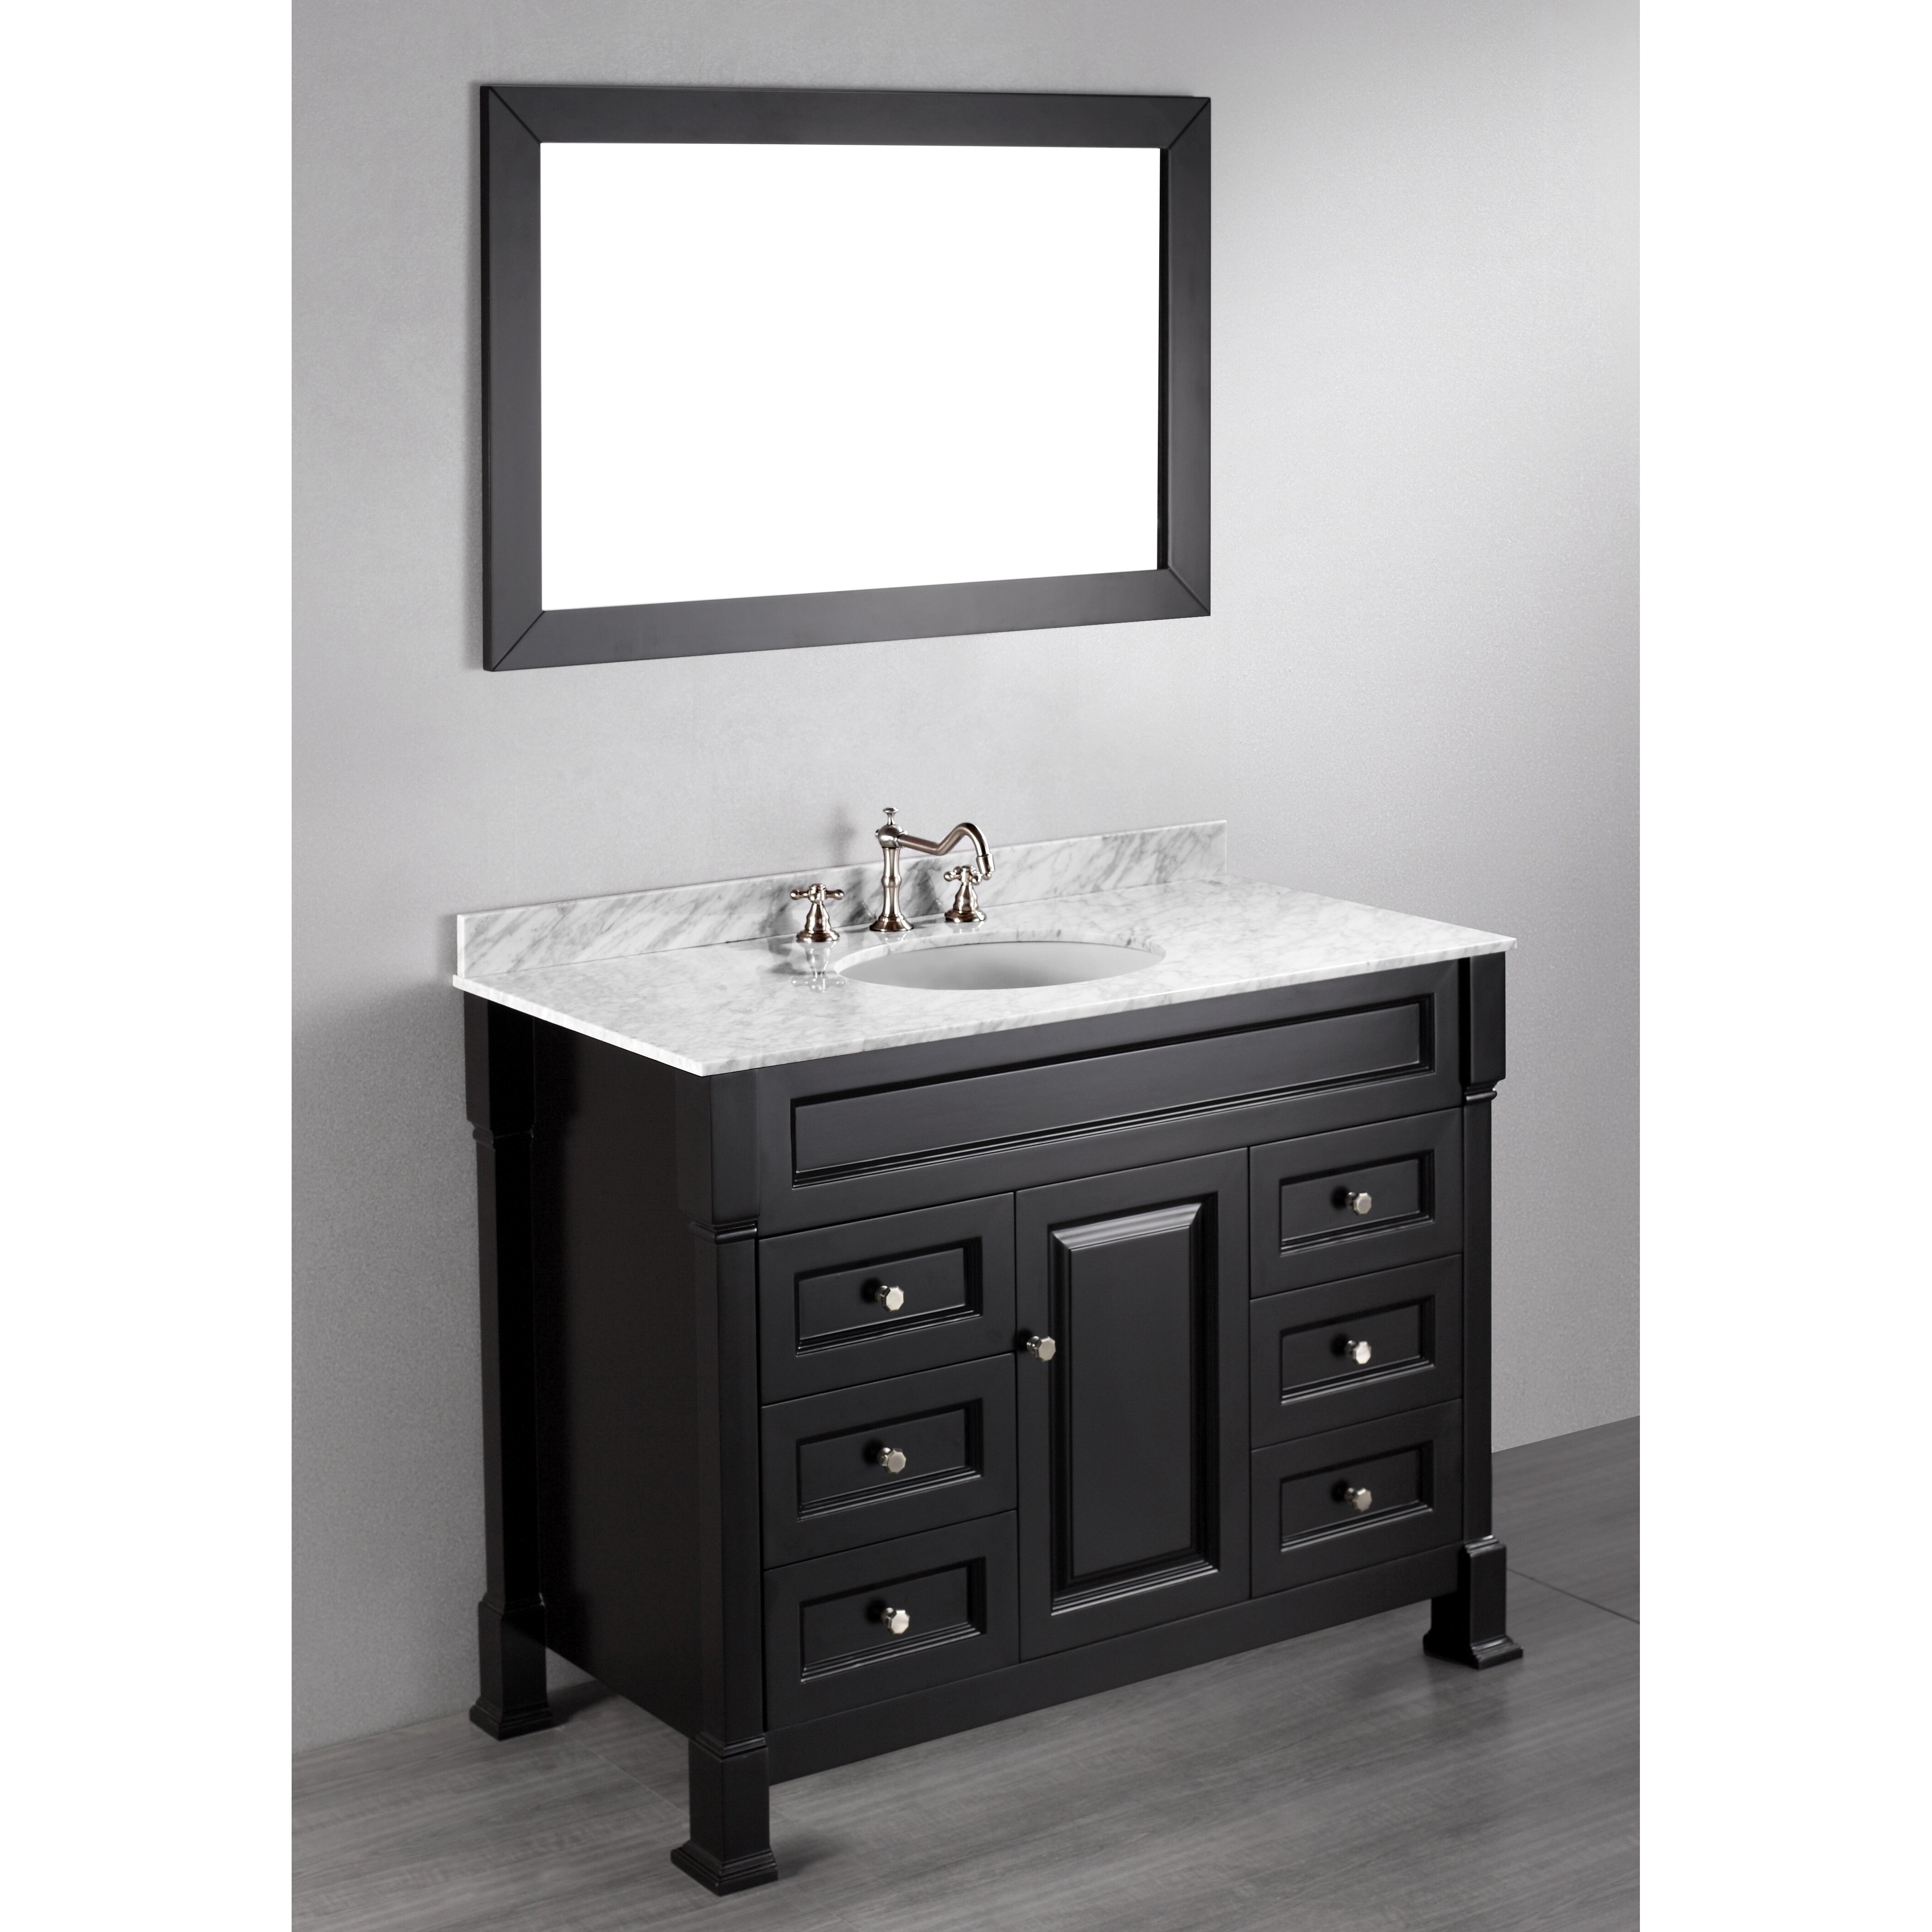 Bosconi contemporary 43 single bathroom vanity set with mirror reviews wayfair - Kona modern bathroom vanity set ...